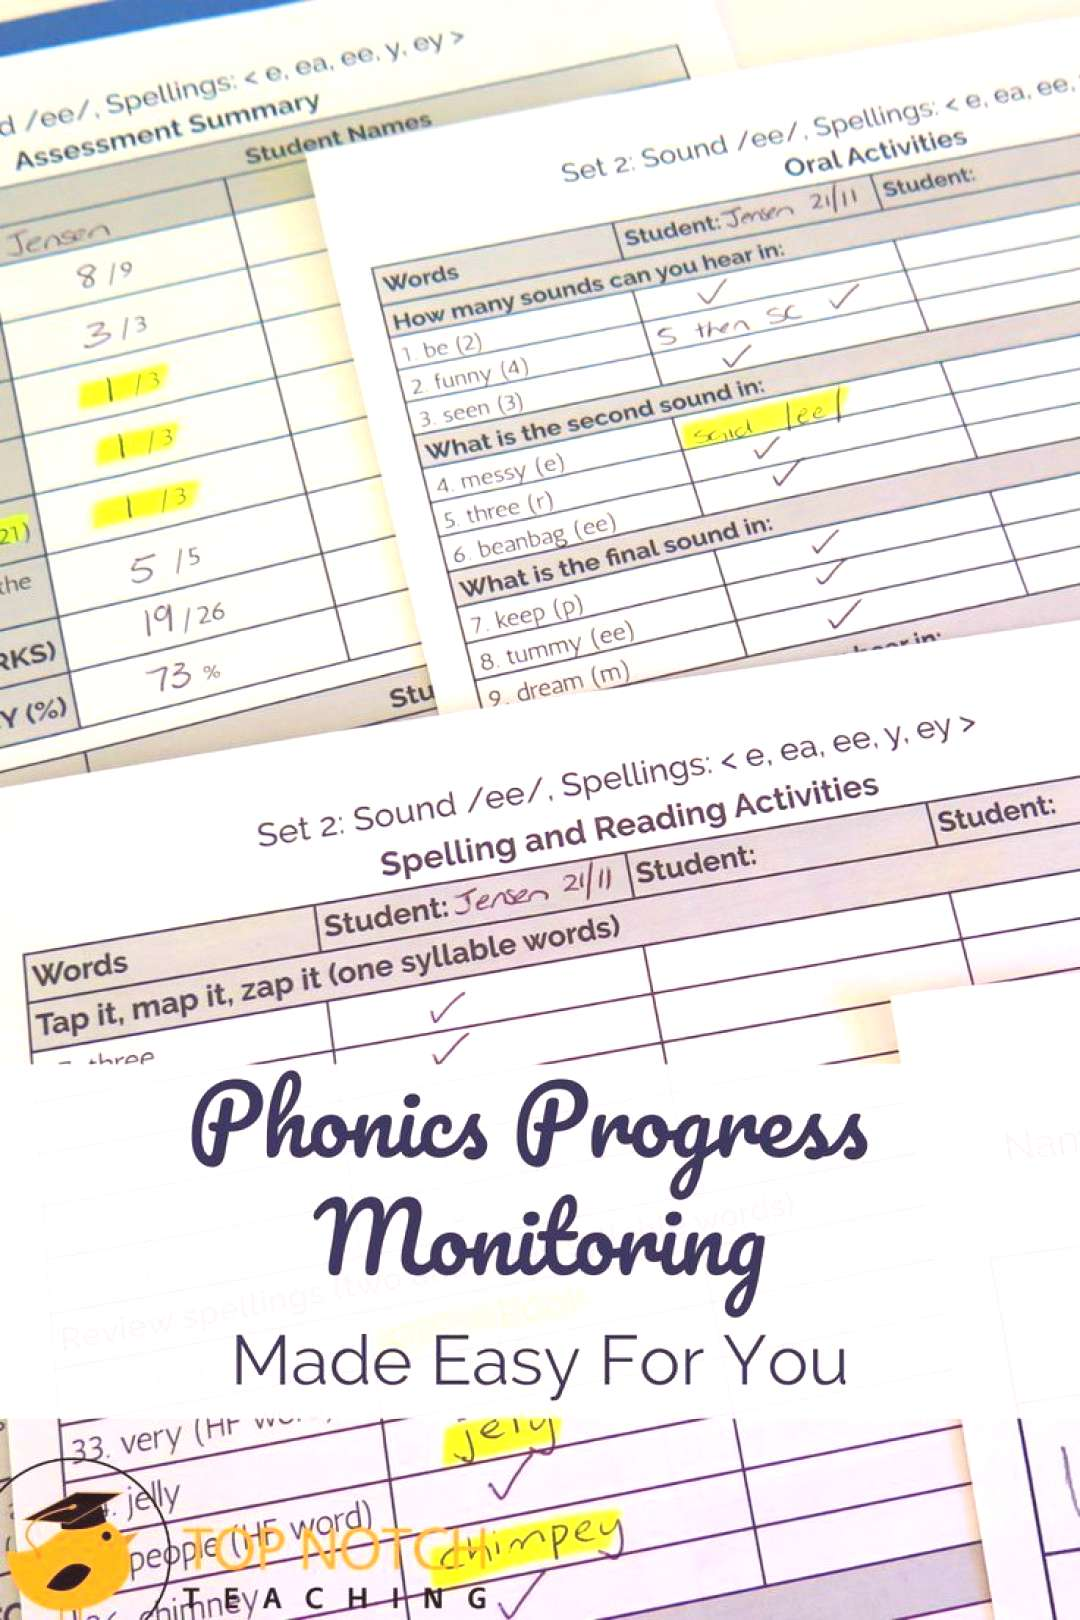 To judge whether your phonics program or intervention is working, you need data. To understand how